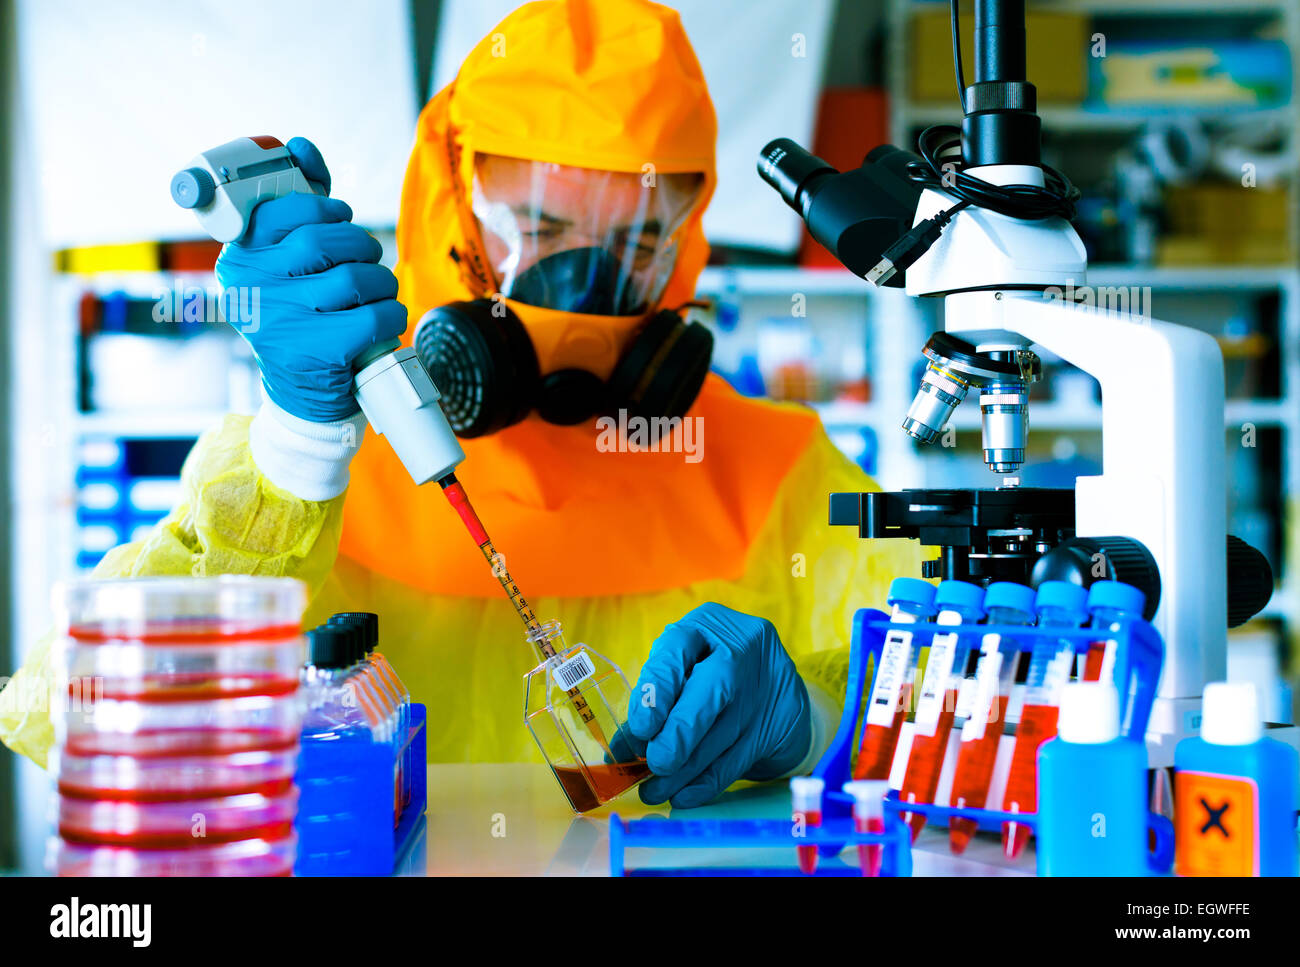 test a vaccine against Ebola infection, a scientist in protective suit with a pipette and a microscope in a laboratory - Stock Image